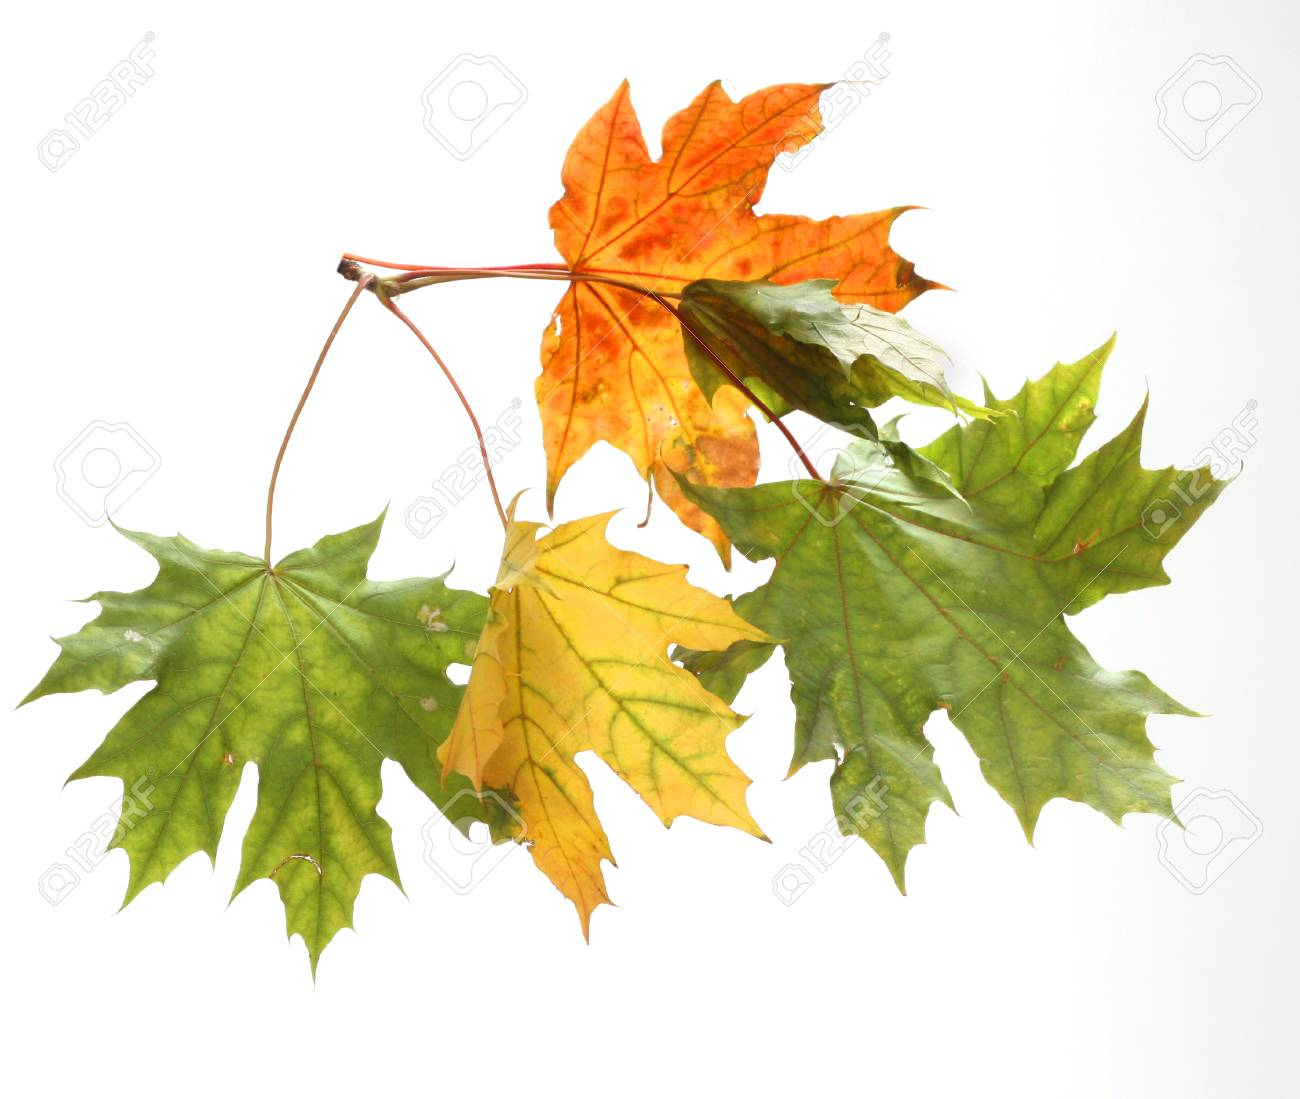 Isolated autumn leaves Stock Photo - 22145882